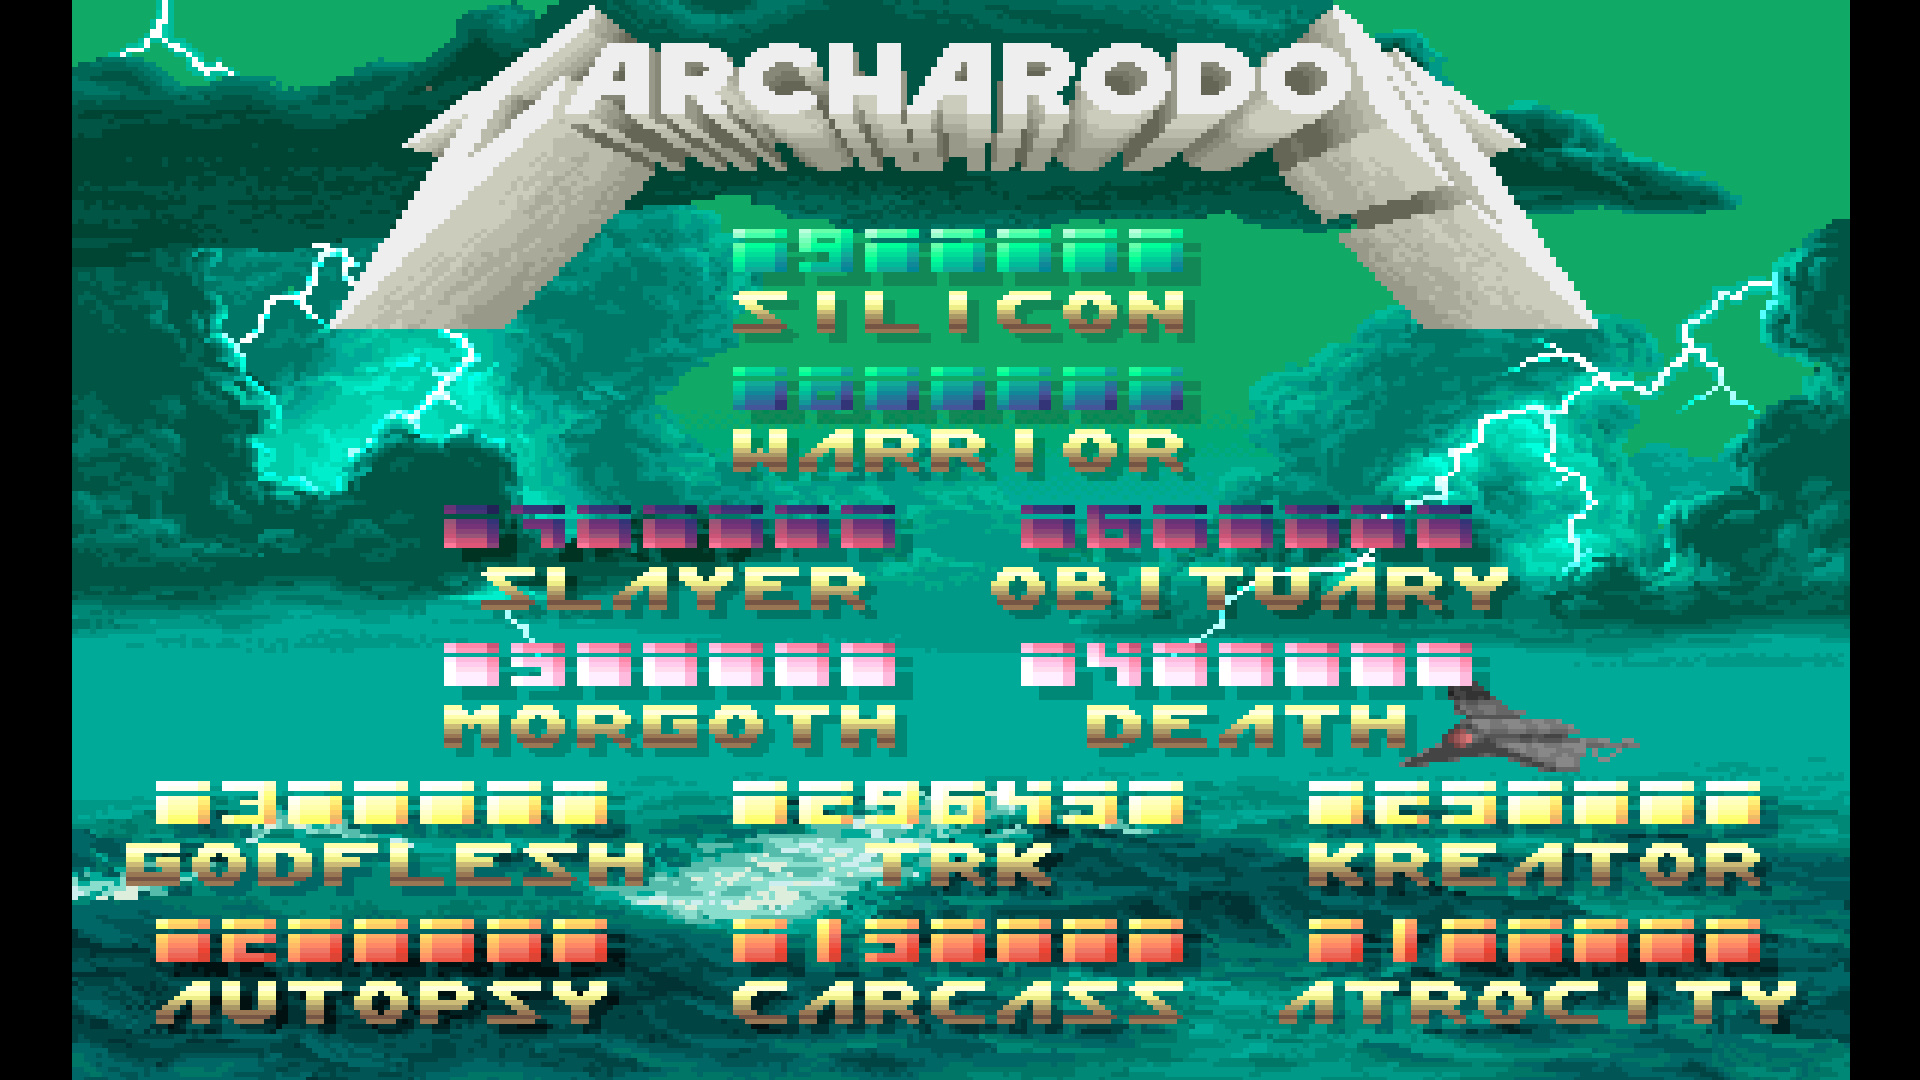 TheTrickster: Carcharodon: White Sharks (Amiga Emulated) 296,450 points on 2015-08-03 06:47:44